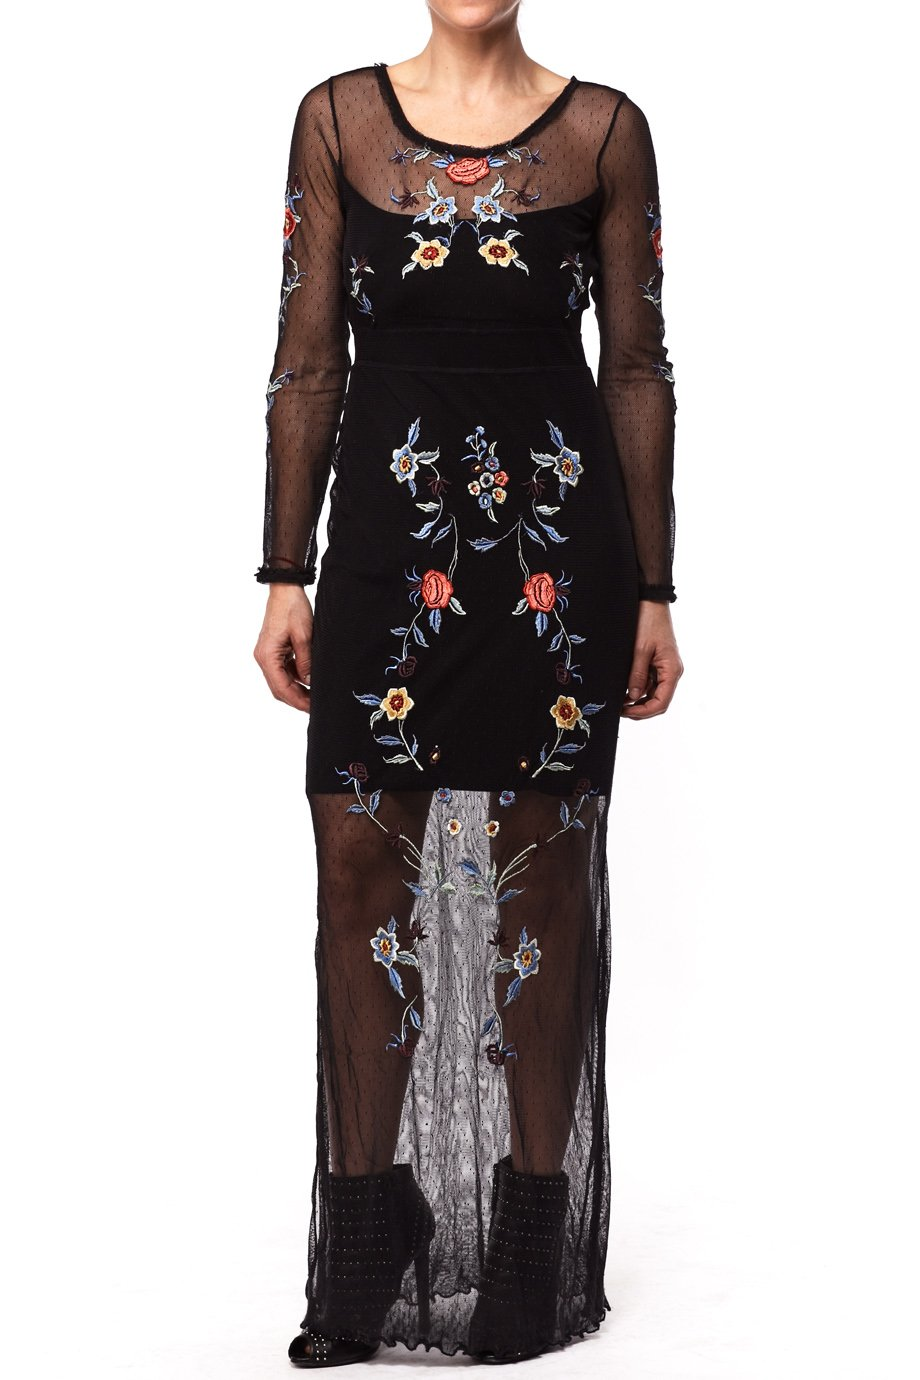 Free People Black Floral Interlace Mesh Maxi Dress